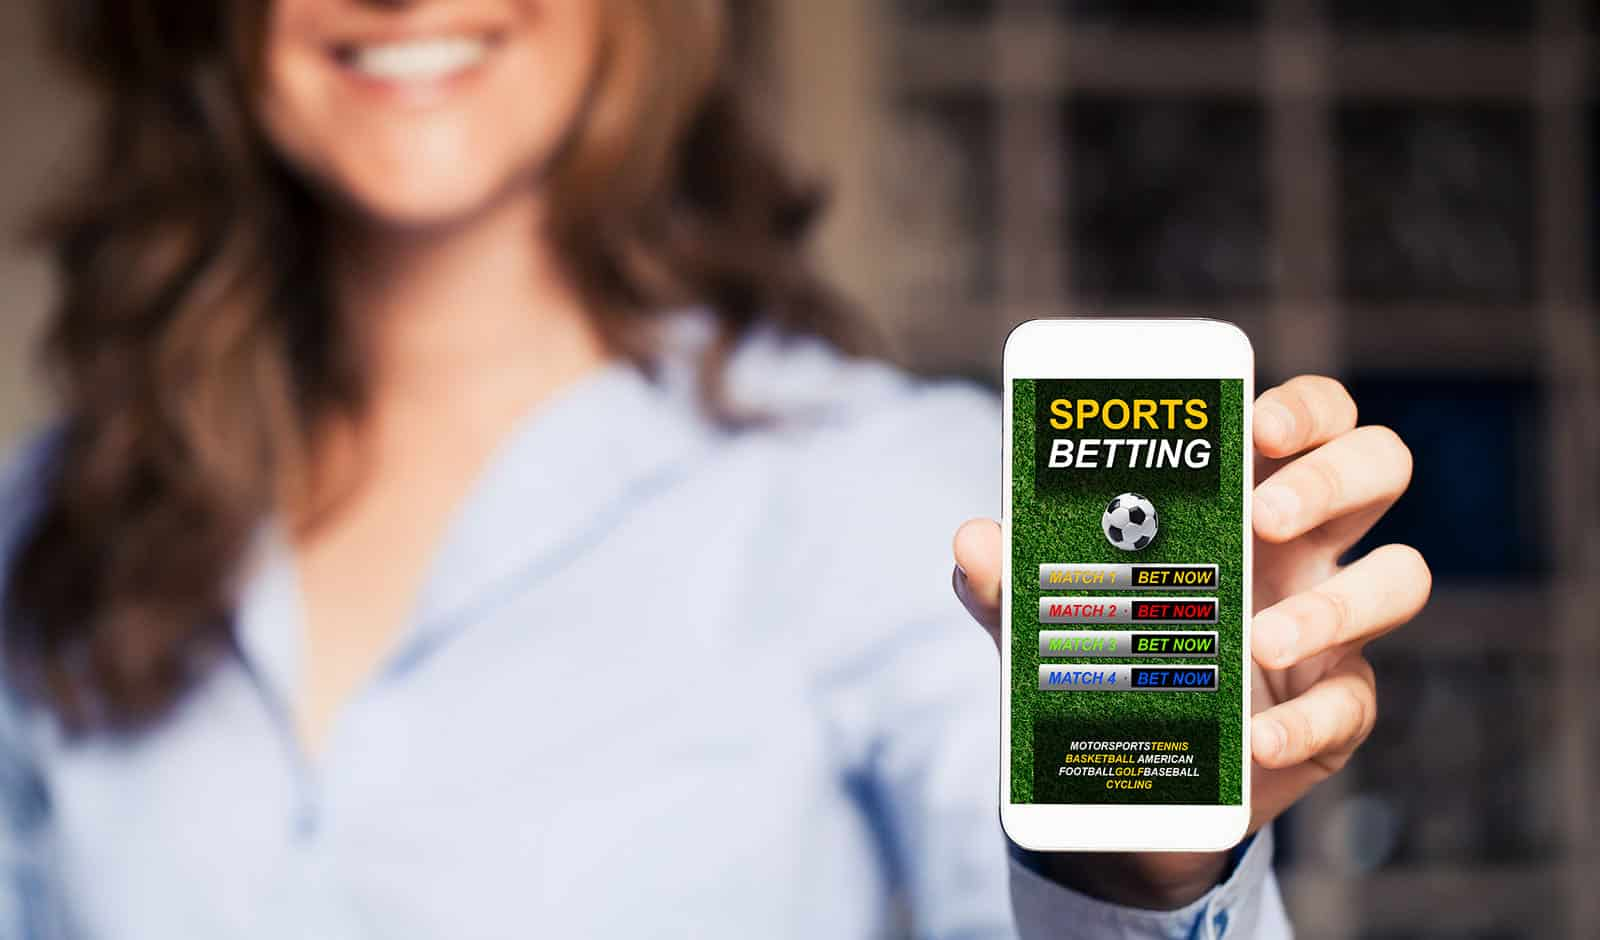 Smiling woman holding a mobile phone with sports betting website